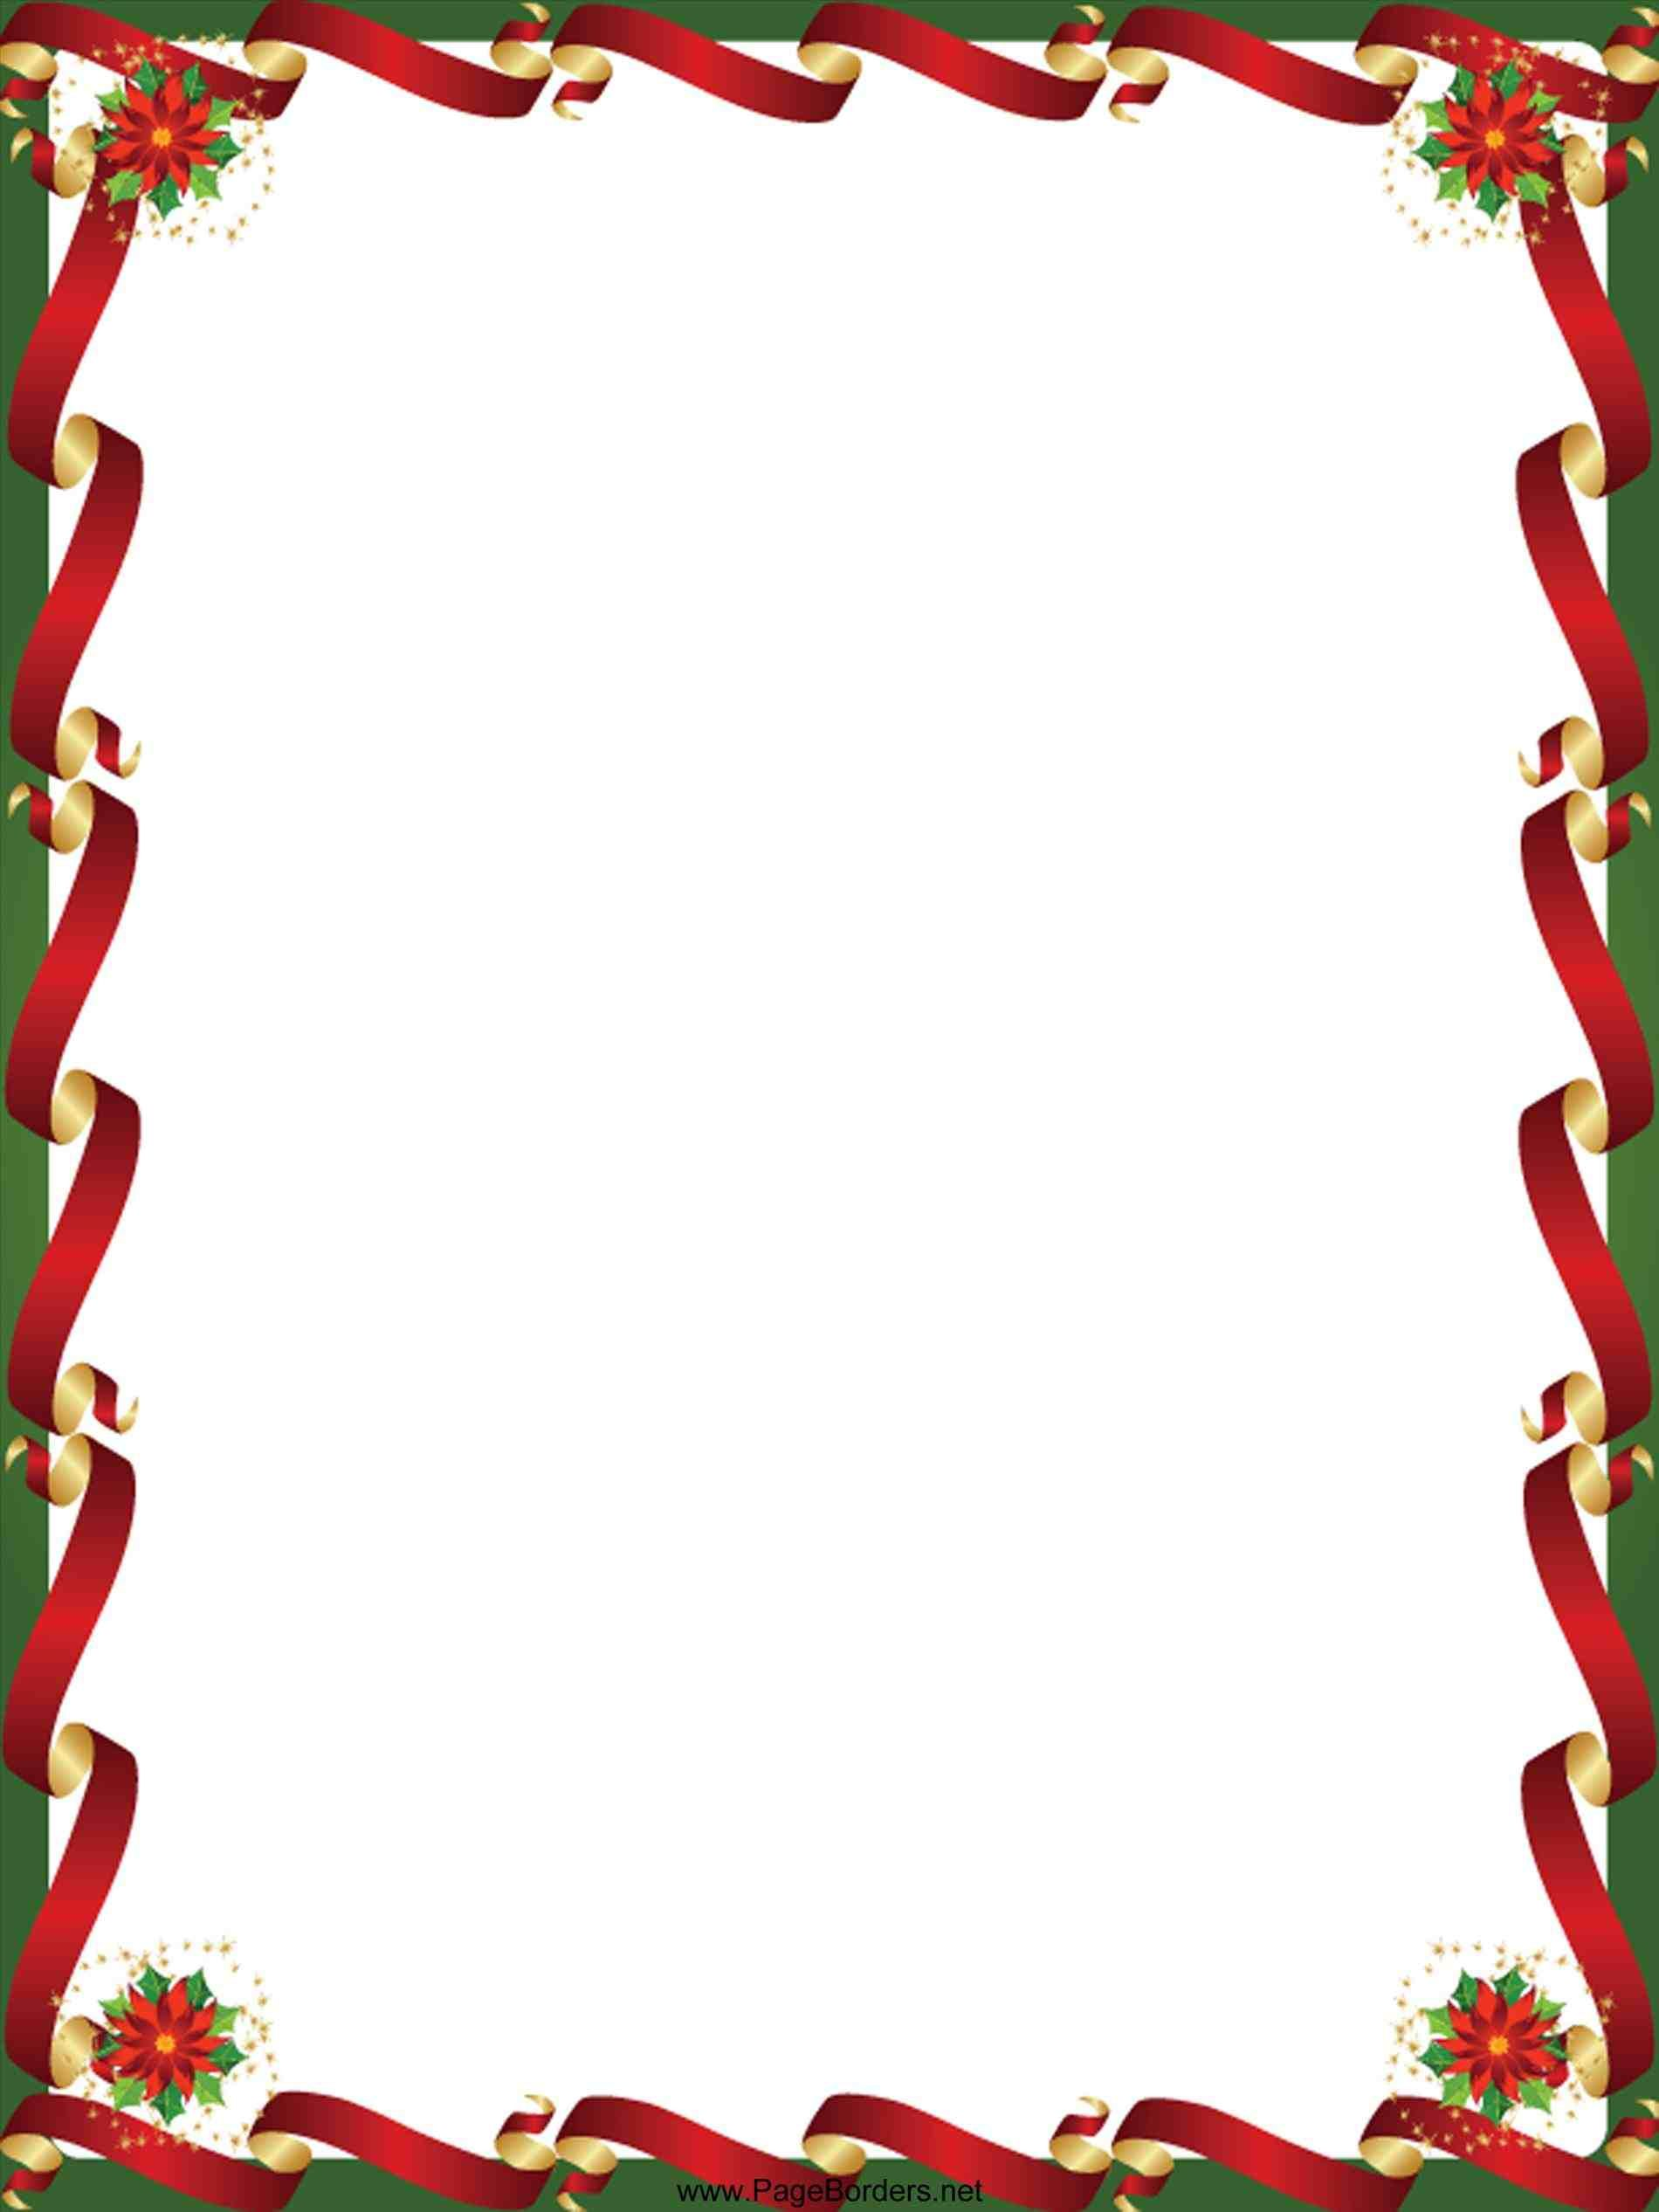 this free christmas border templates download